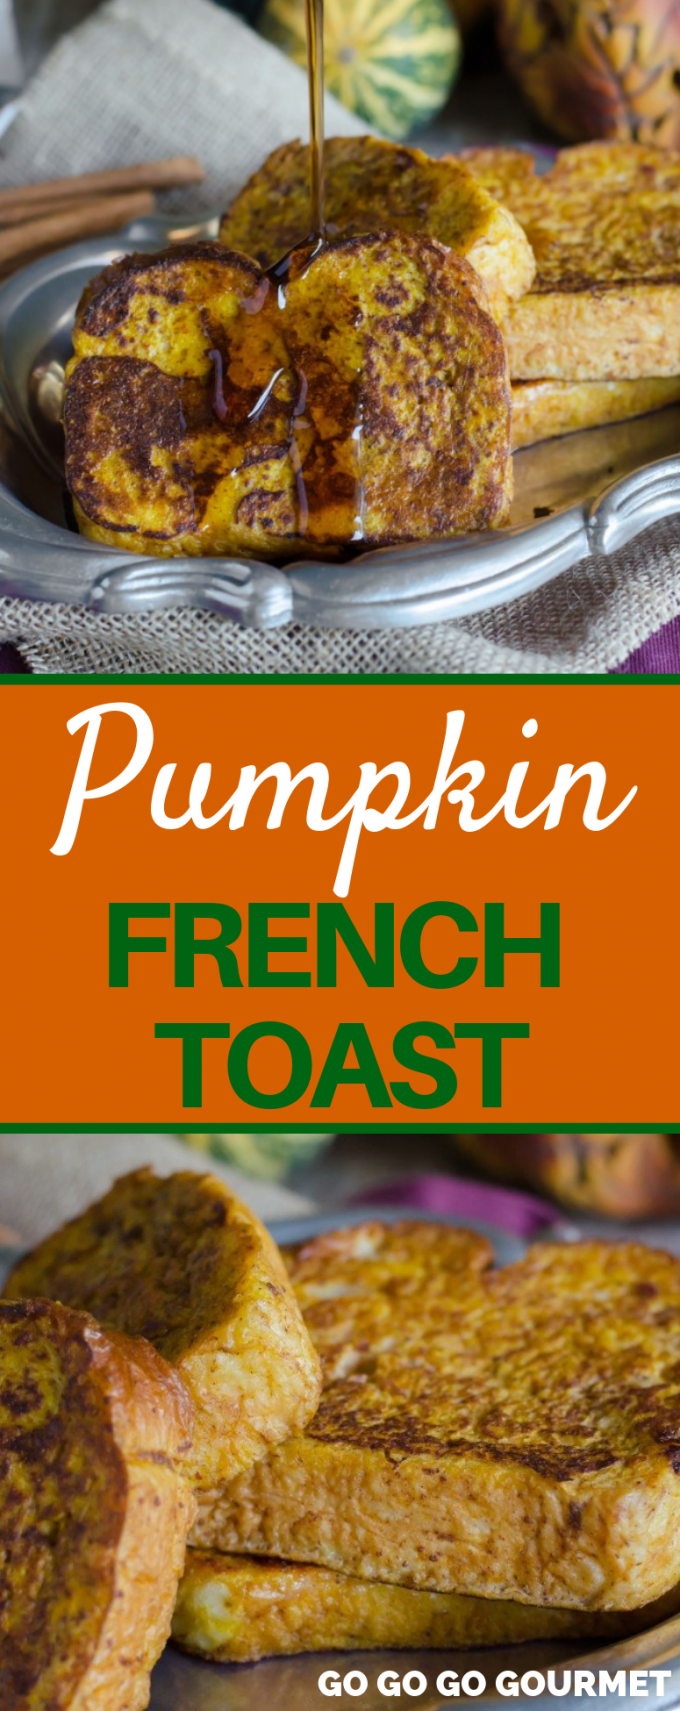 No need to bake an overnight casserole, this Pumpkin French Toast recipe is easy enough to make the morning of! It's the perfect breakfast for fall, and all of the family will enjoy it! #gogogogourmet #pumpkinfrenchtoast #easybreakfastrecipes #fallbreakfastrecipes #pumpkinrecipes via @gogogogourmet